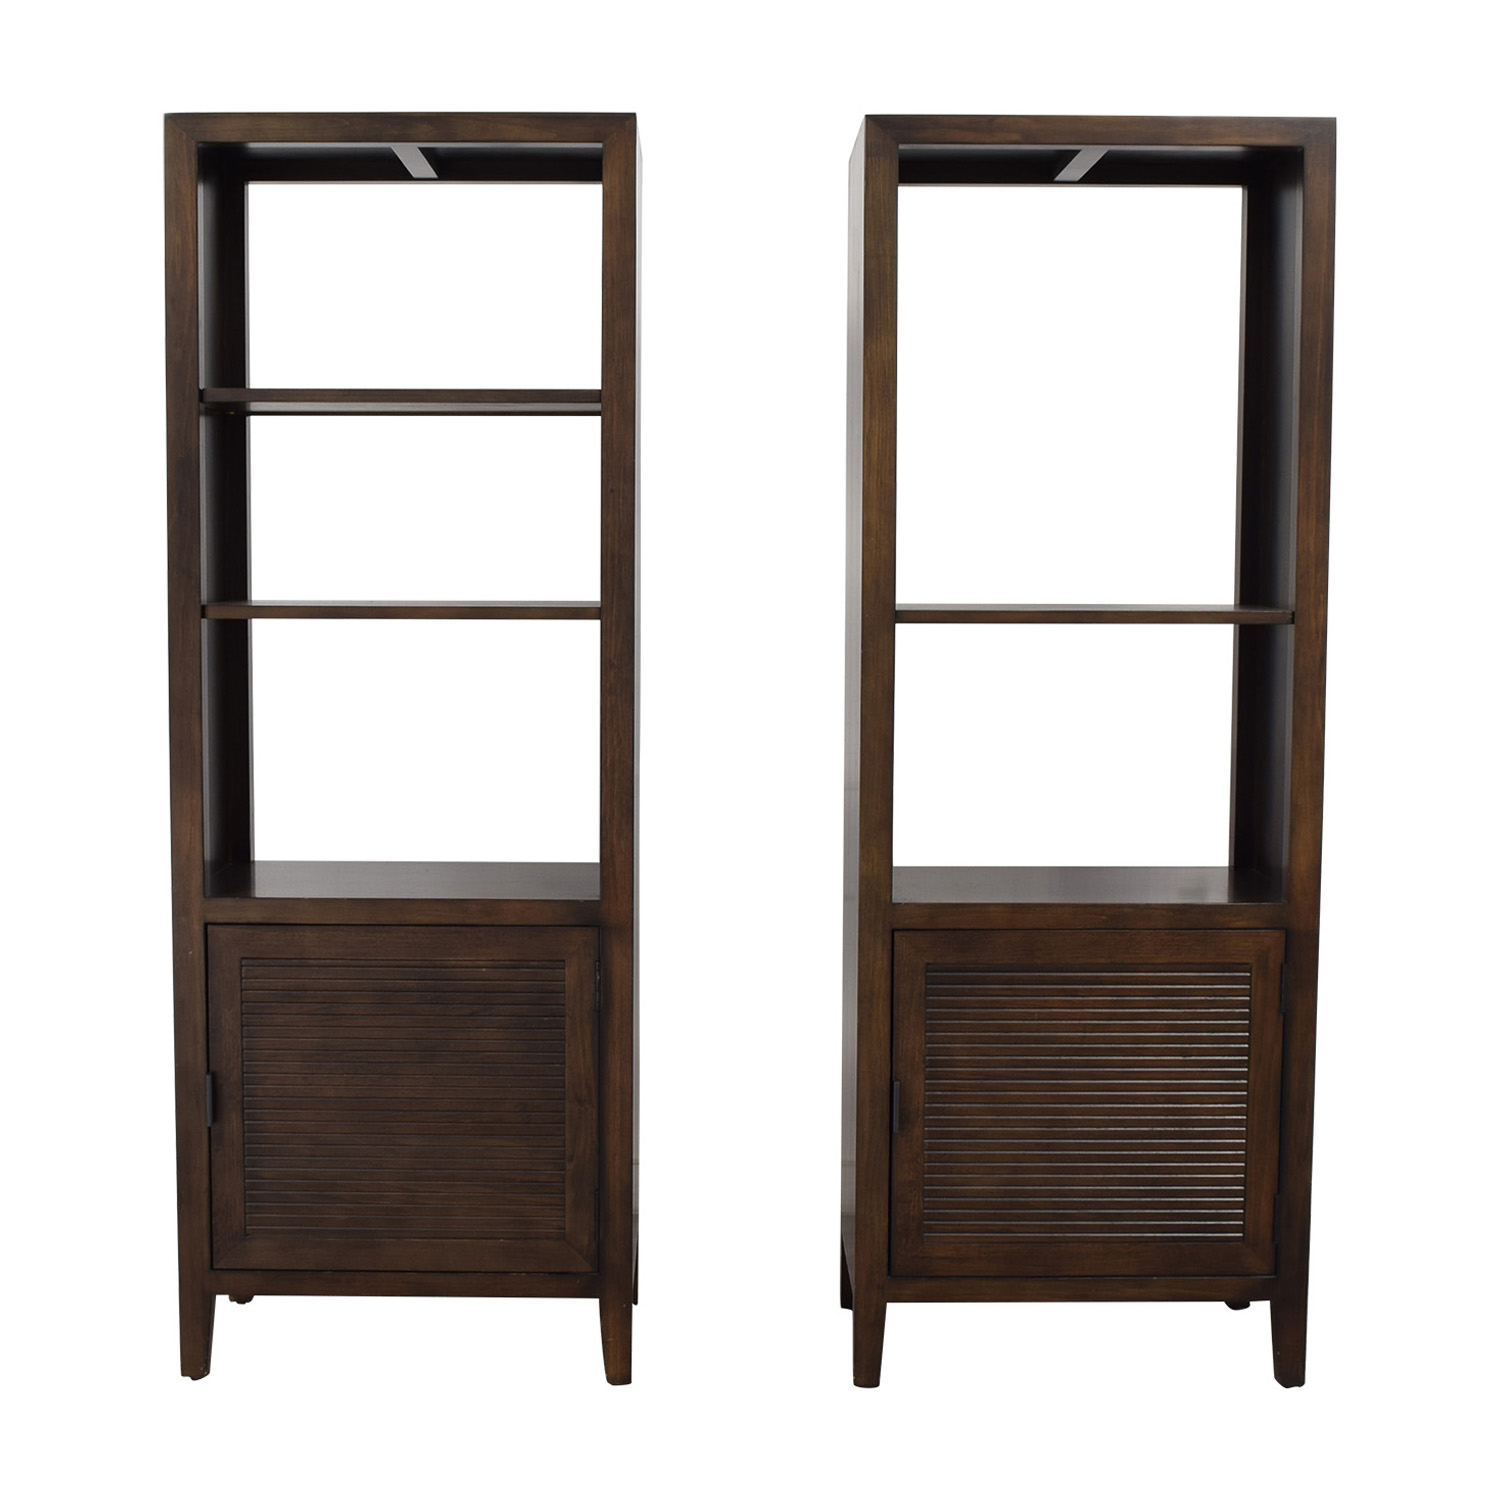 Crate & Barrel Crate & Barrel Bookshelves price